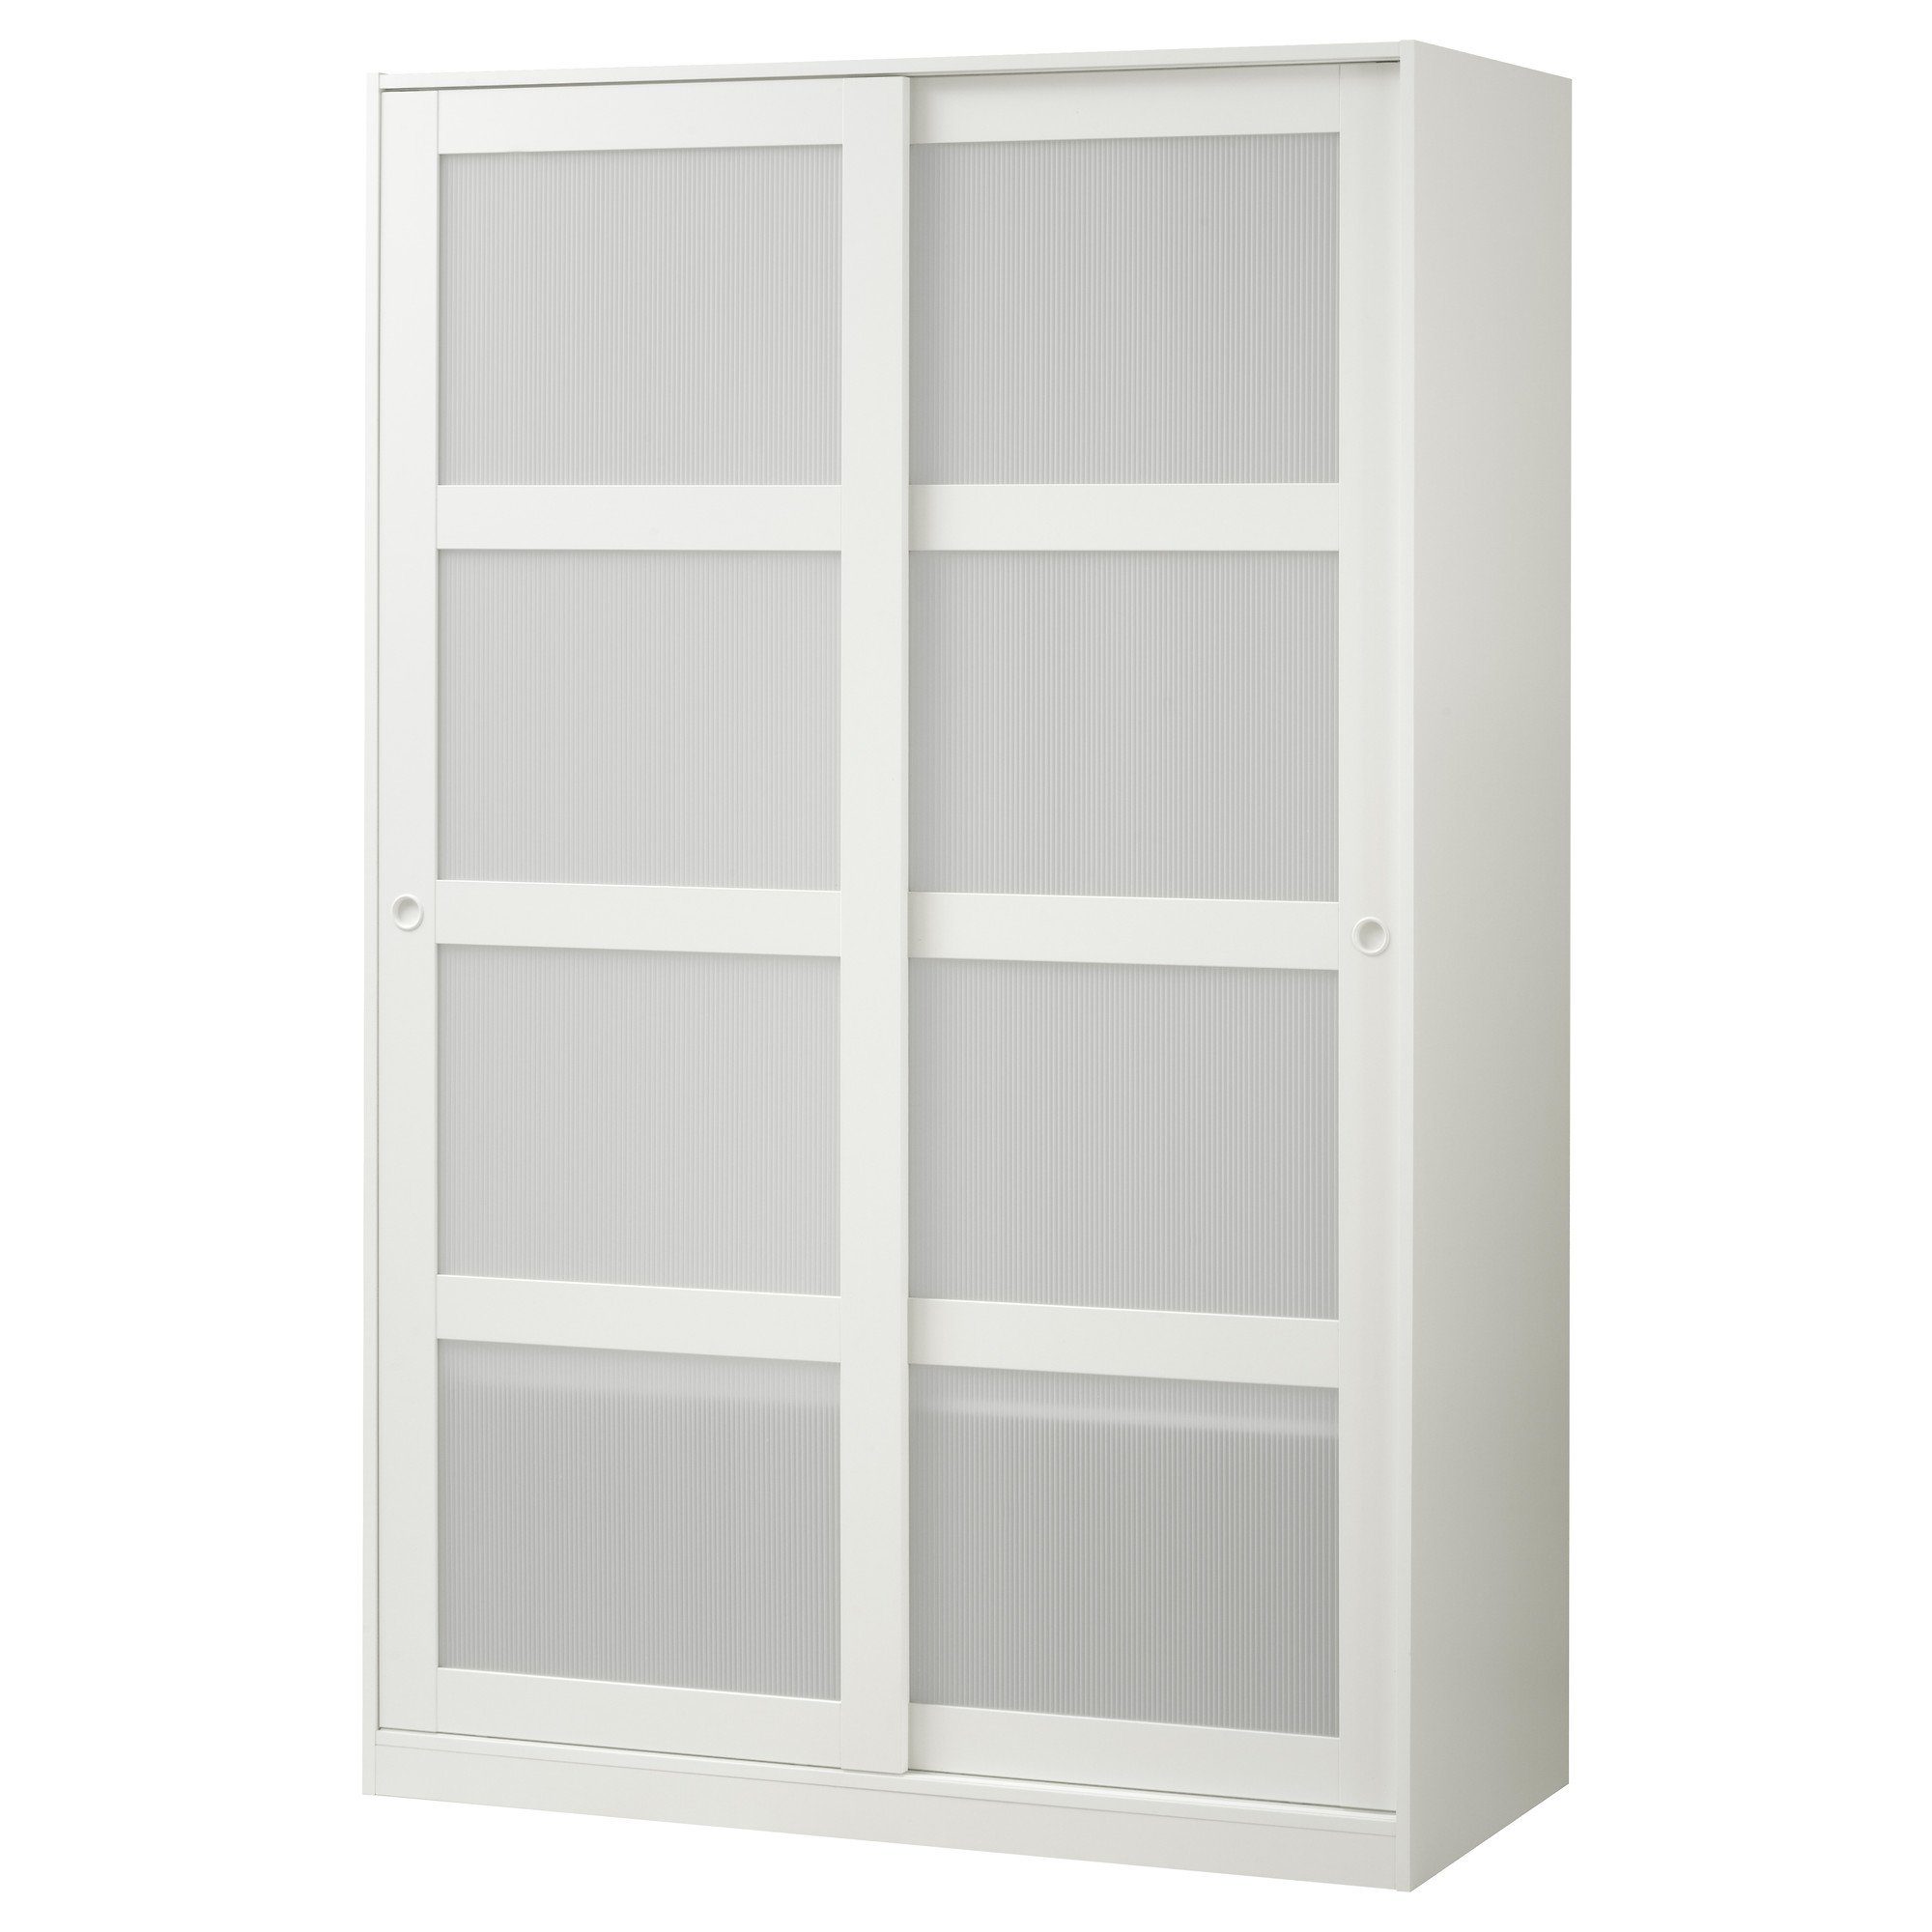 Cheap Wardrobe Closet | Stand Alone Wardrobe Closet | Wardrobe Armoire Cheap